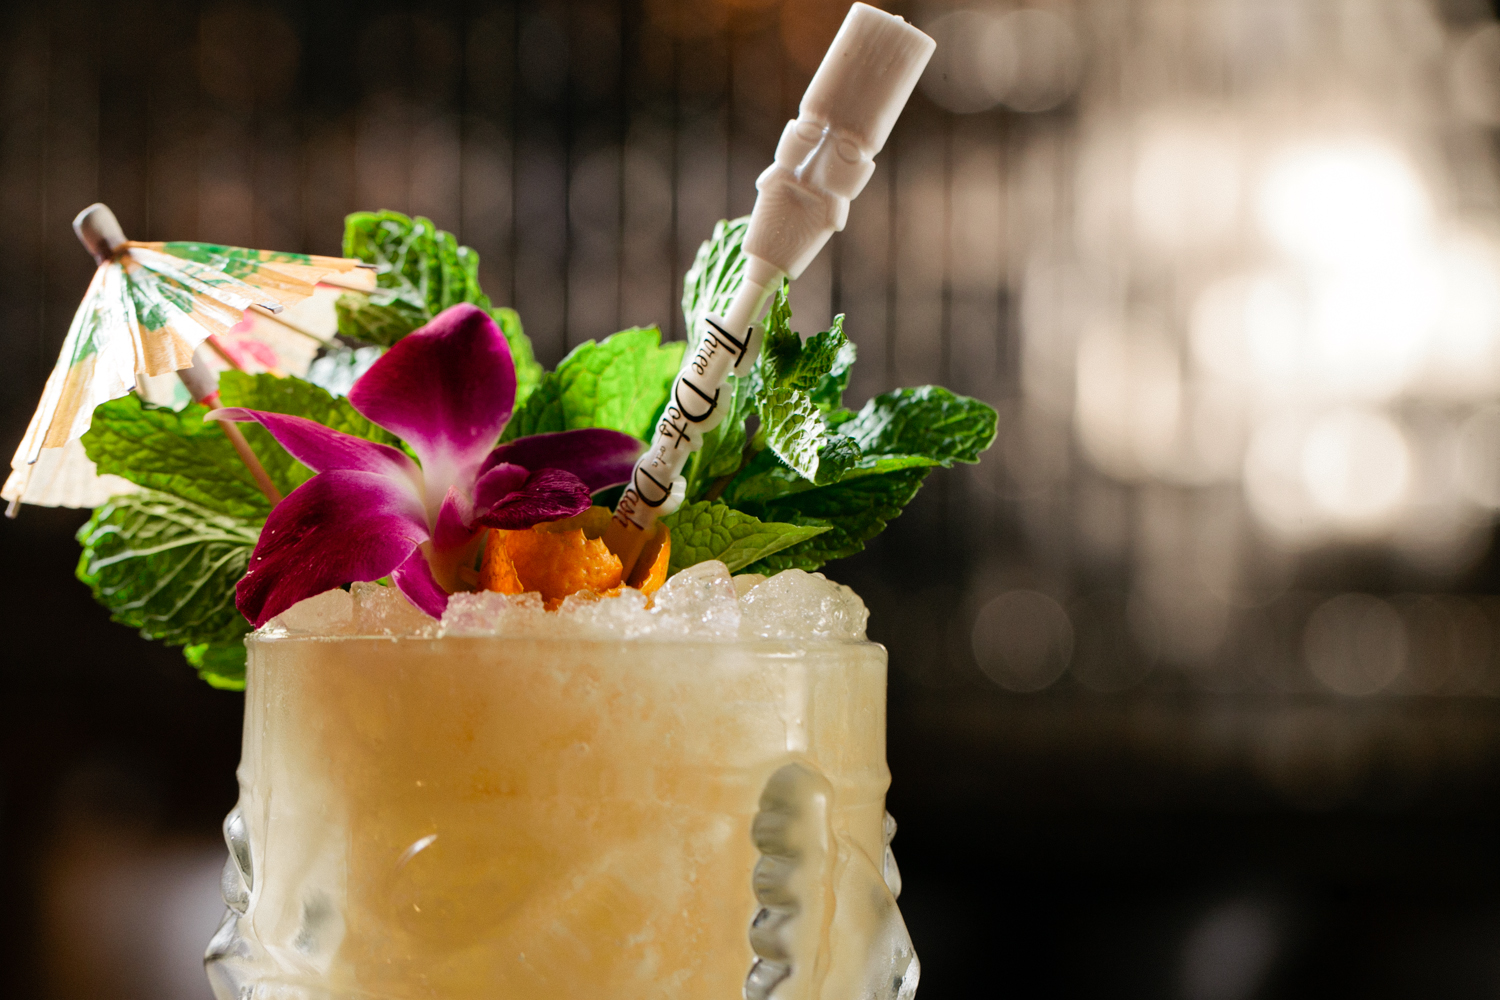 3 Simple Tips To Make Your Bar or Restaurant Memorable